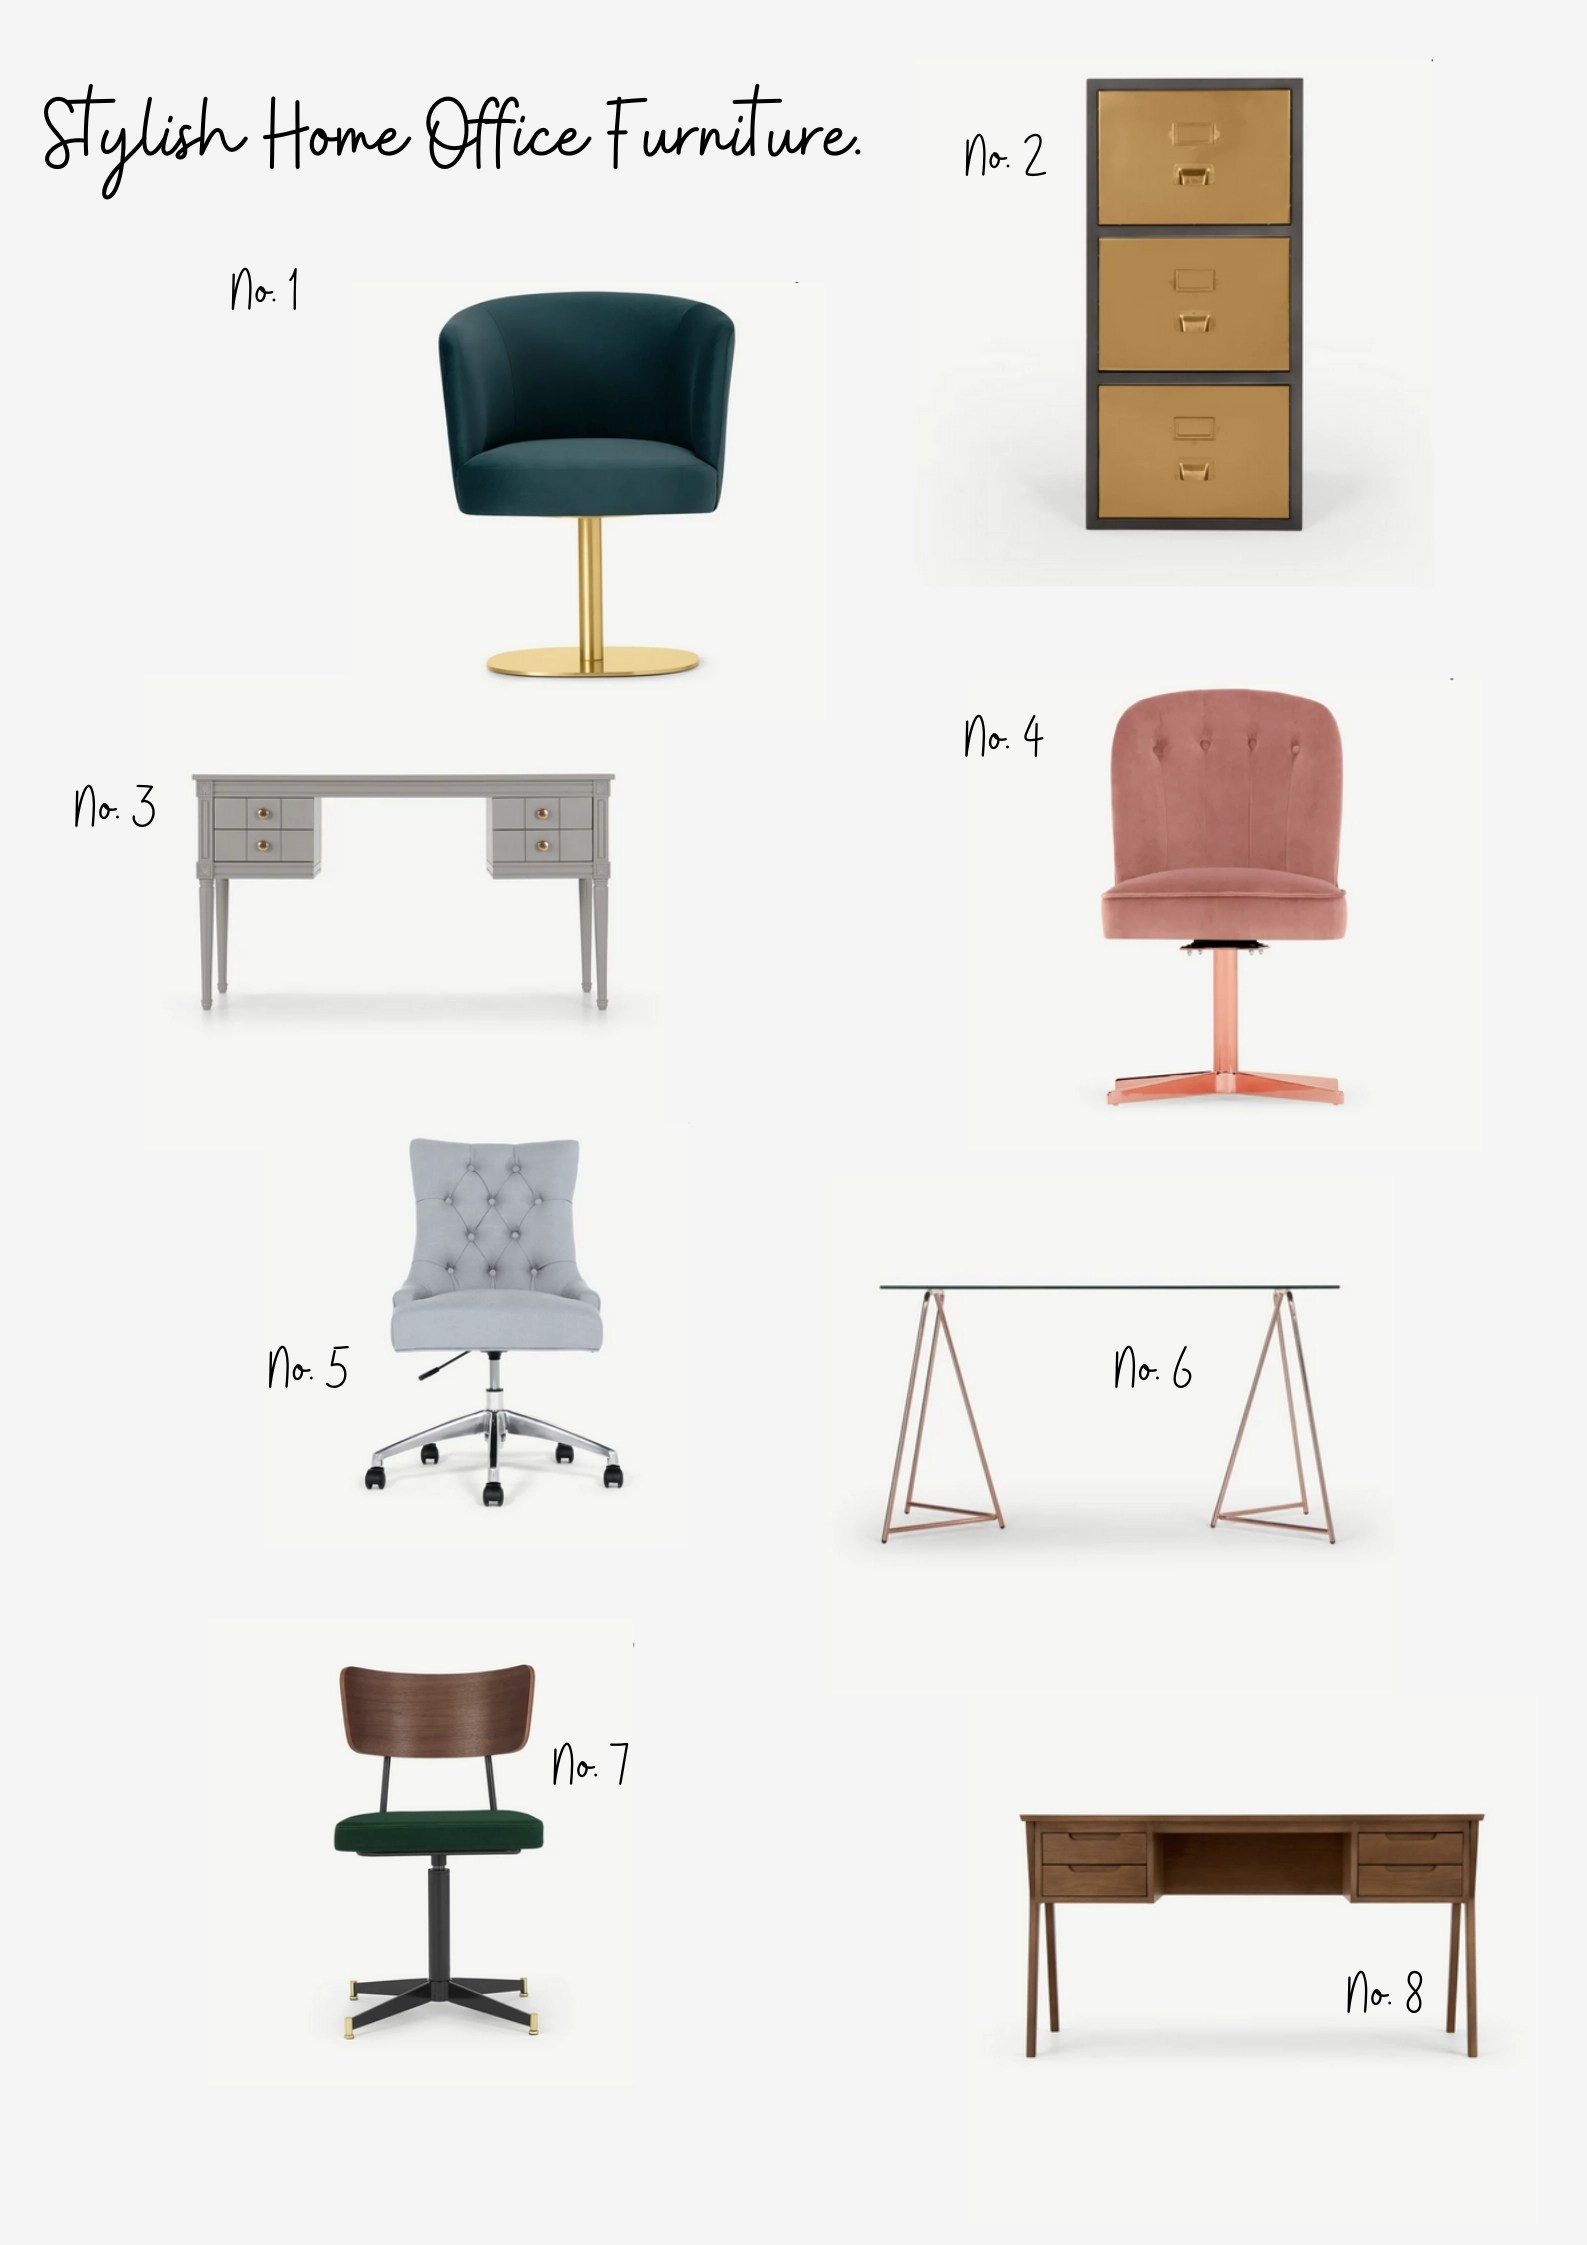 collection of home office chairs and desks.